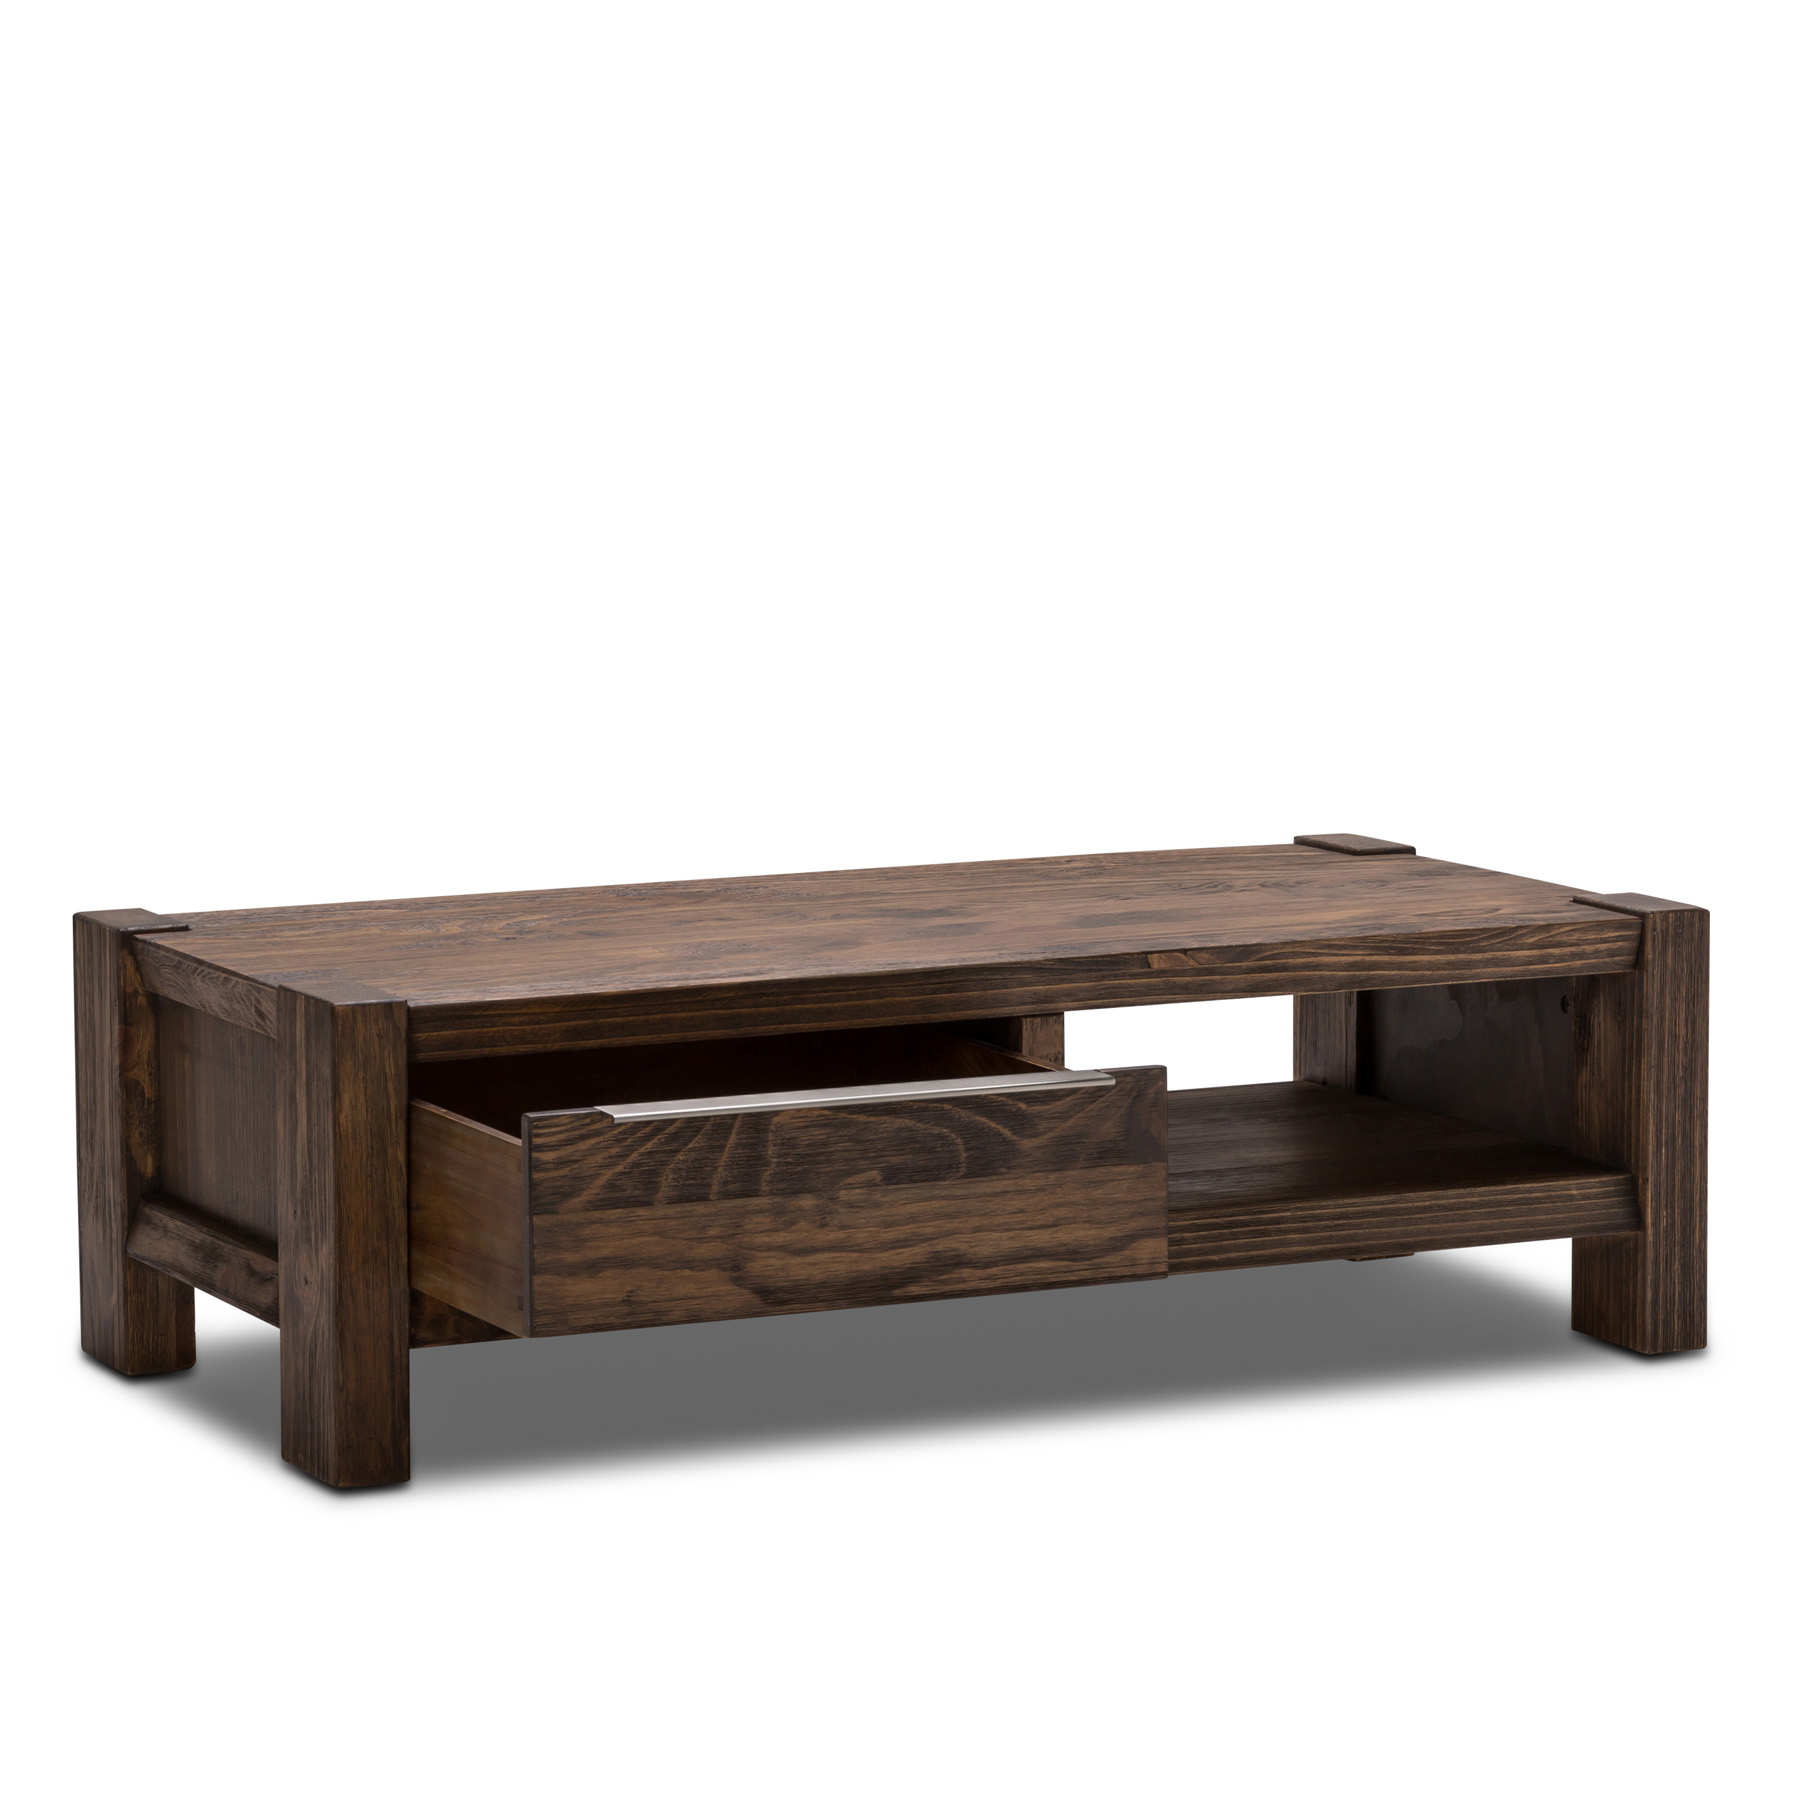 Julia brand new pine 1 storage drawer 1 shelf coffee table ebay Pine coffee table with drawers